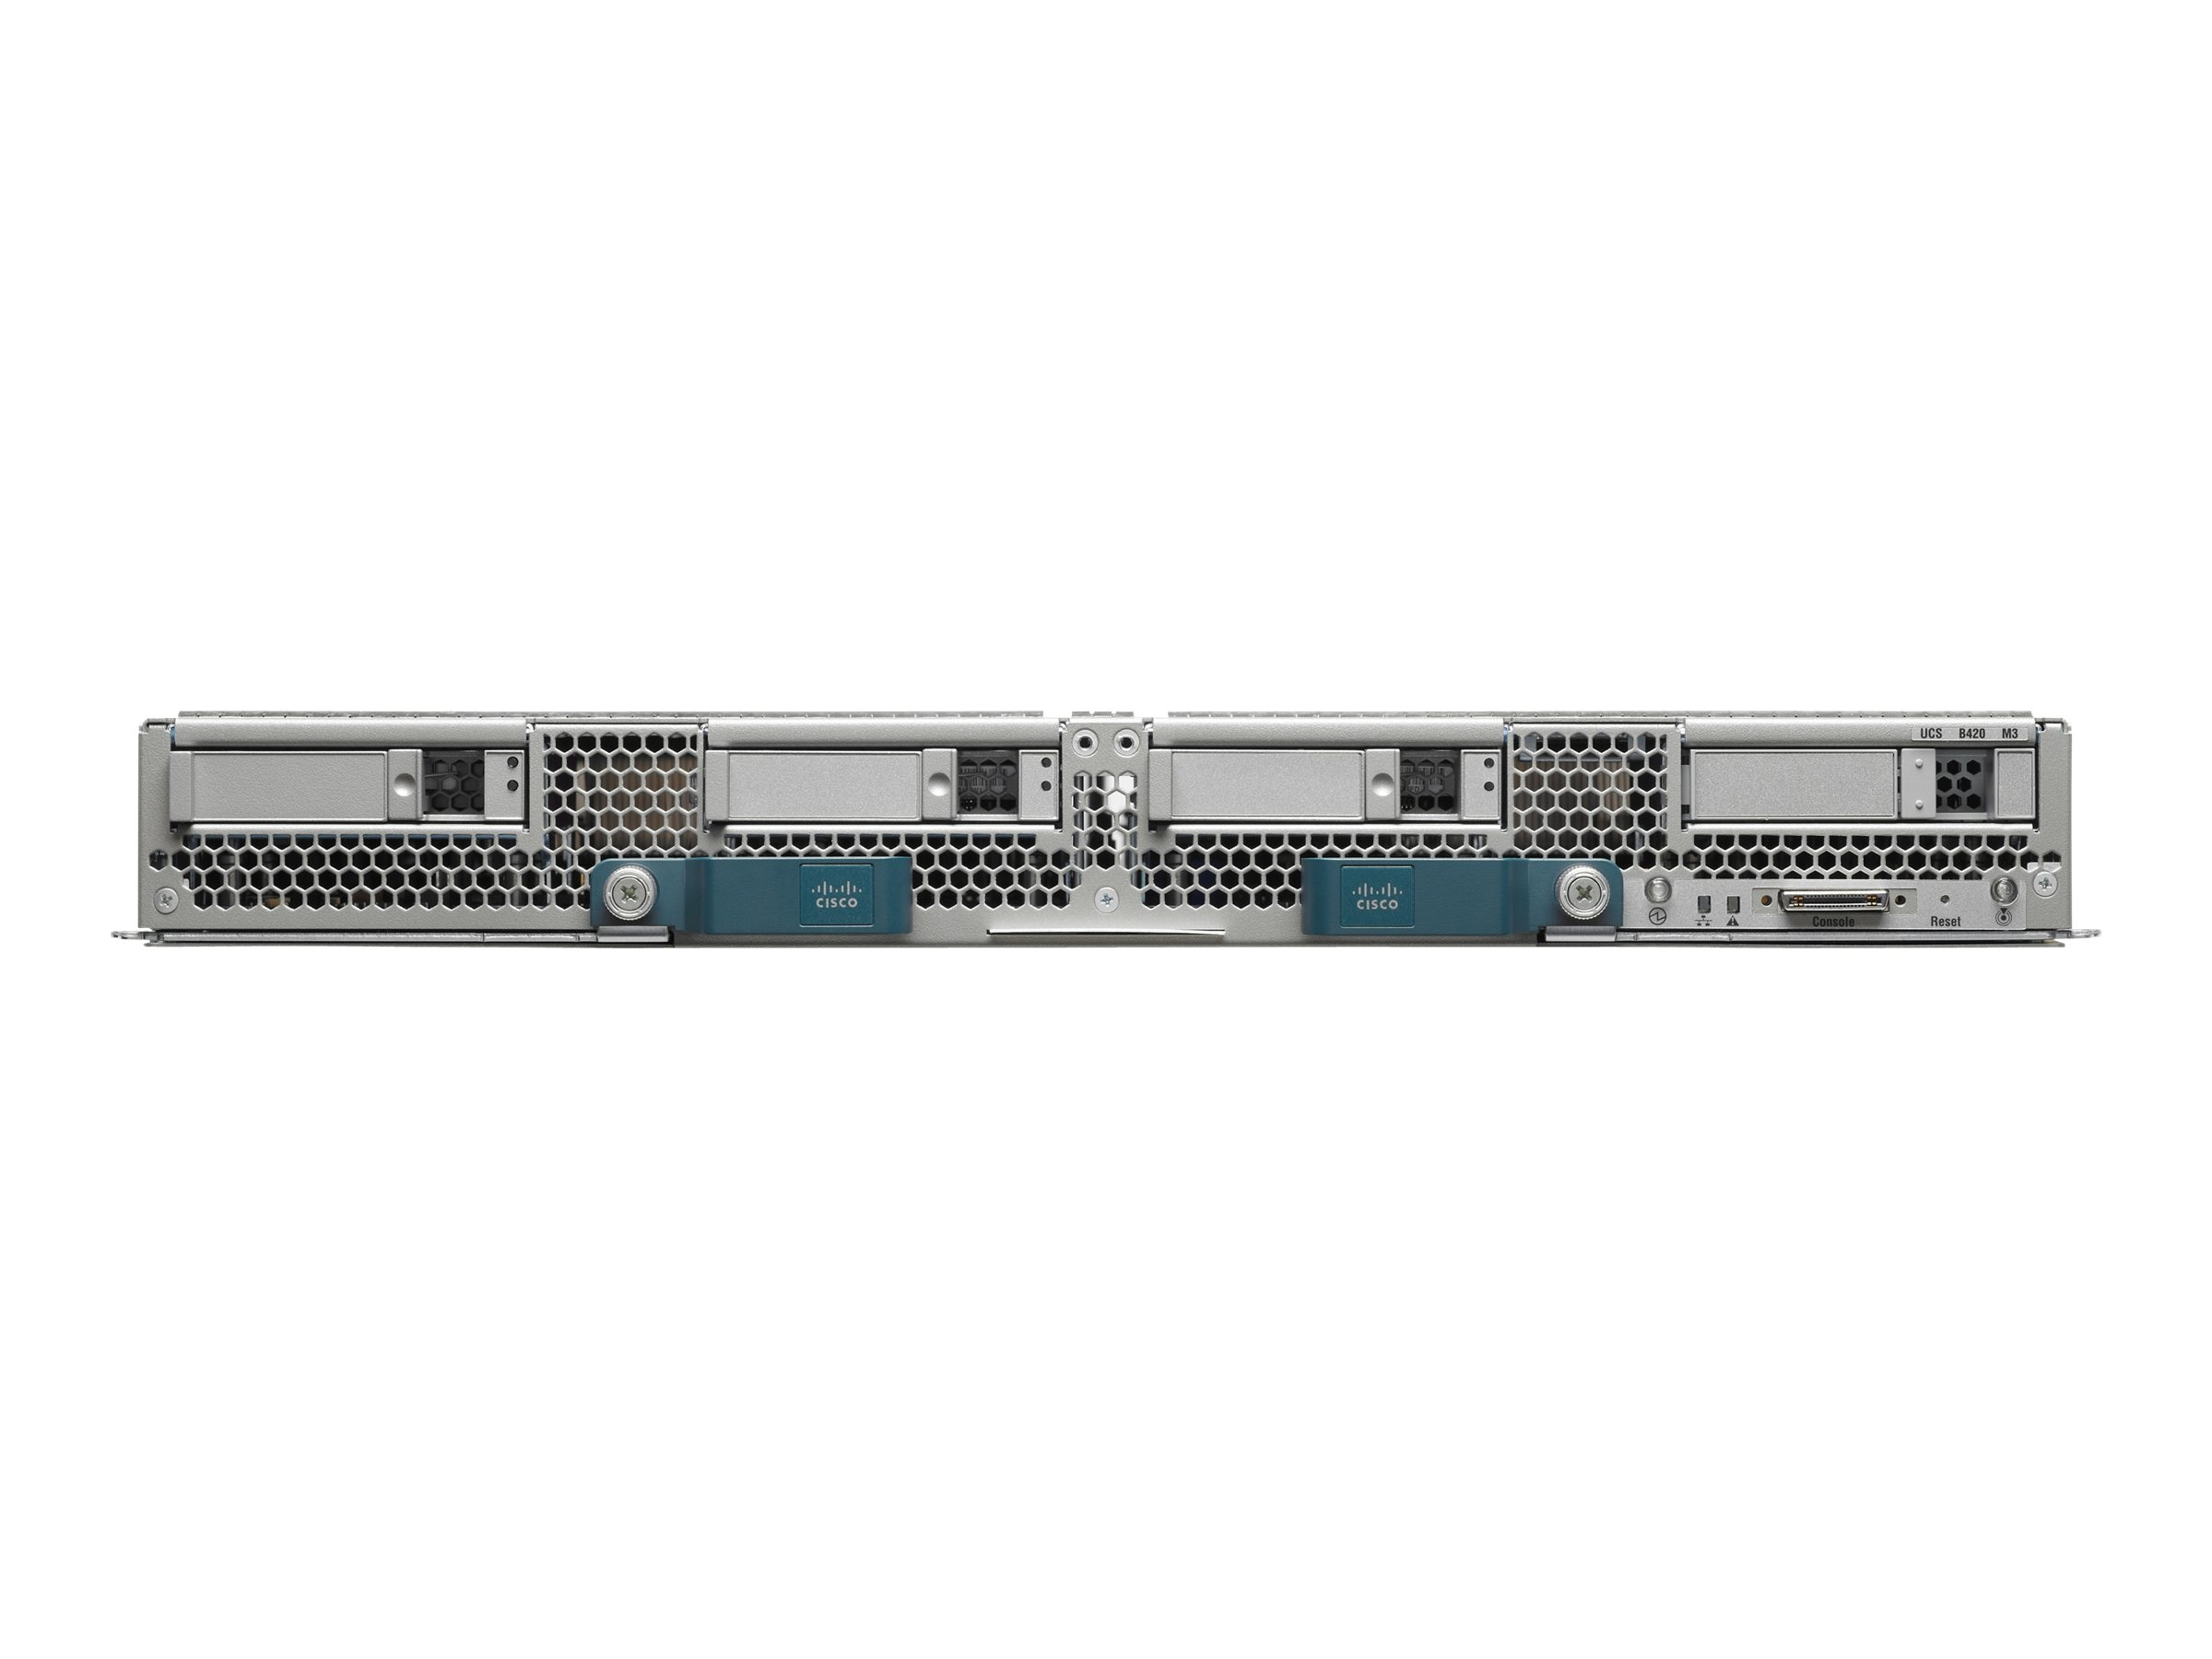 Cisco UCS B420 M3 Blade Server No CPU, Memory, HD, UCSB-B420-M3-D, 15139128, Servers - Blade